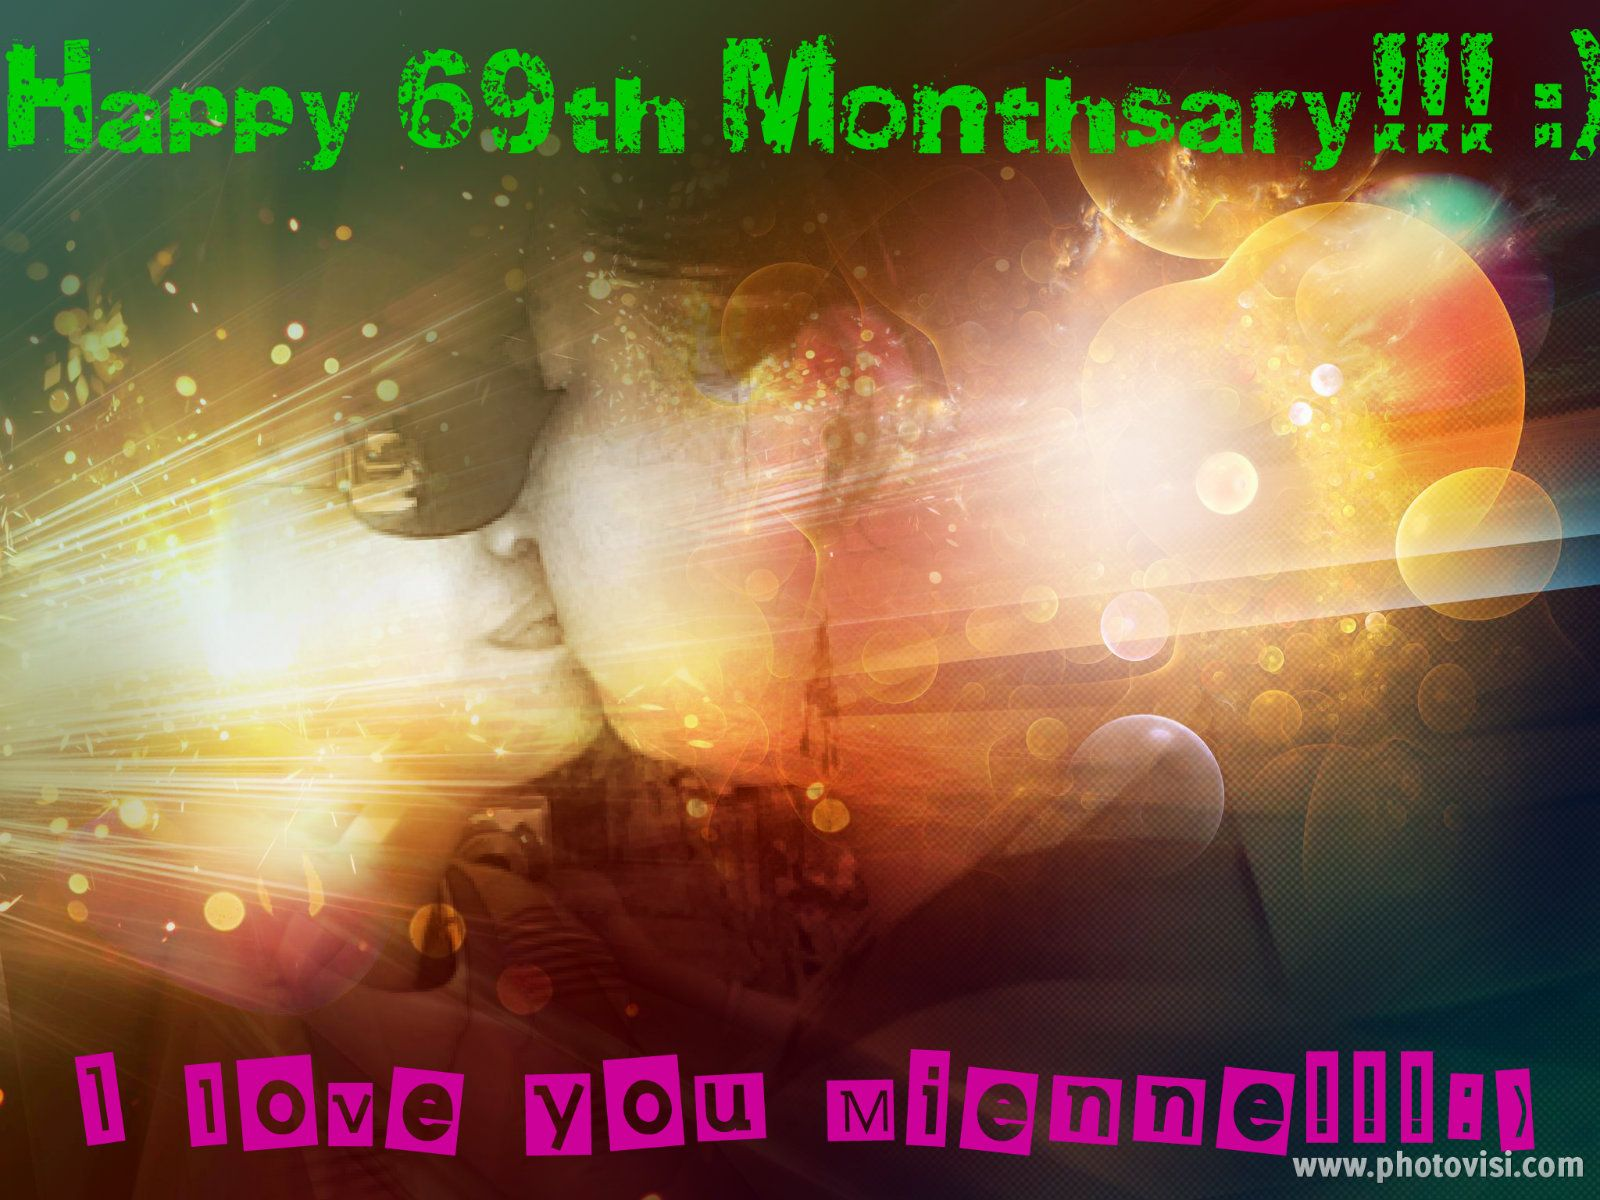 04032013 my 69th monthsary cover photo:) @KaRen MieNne